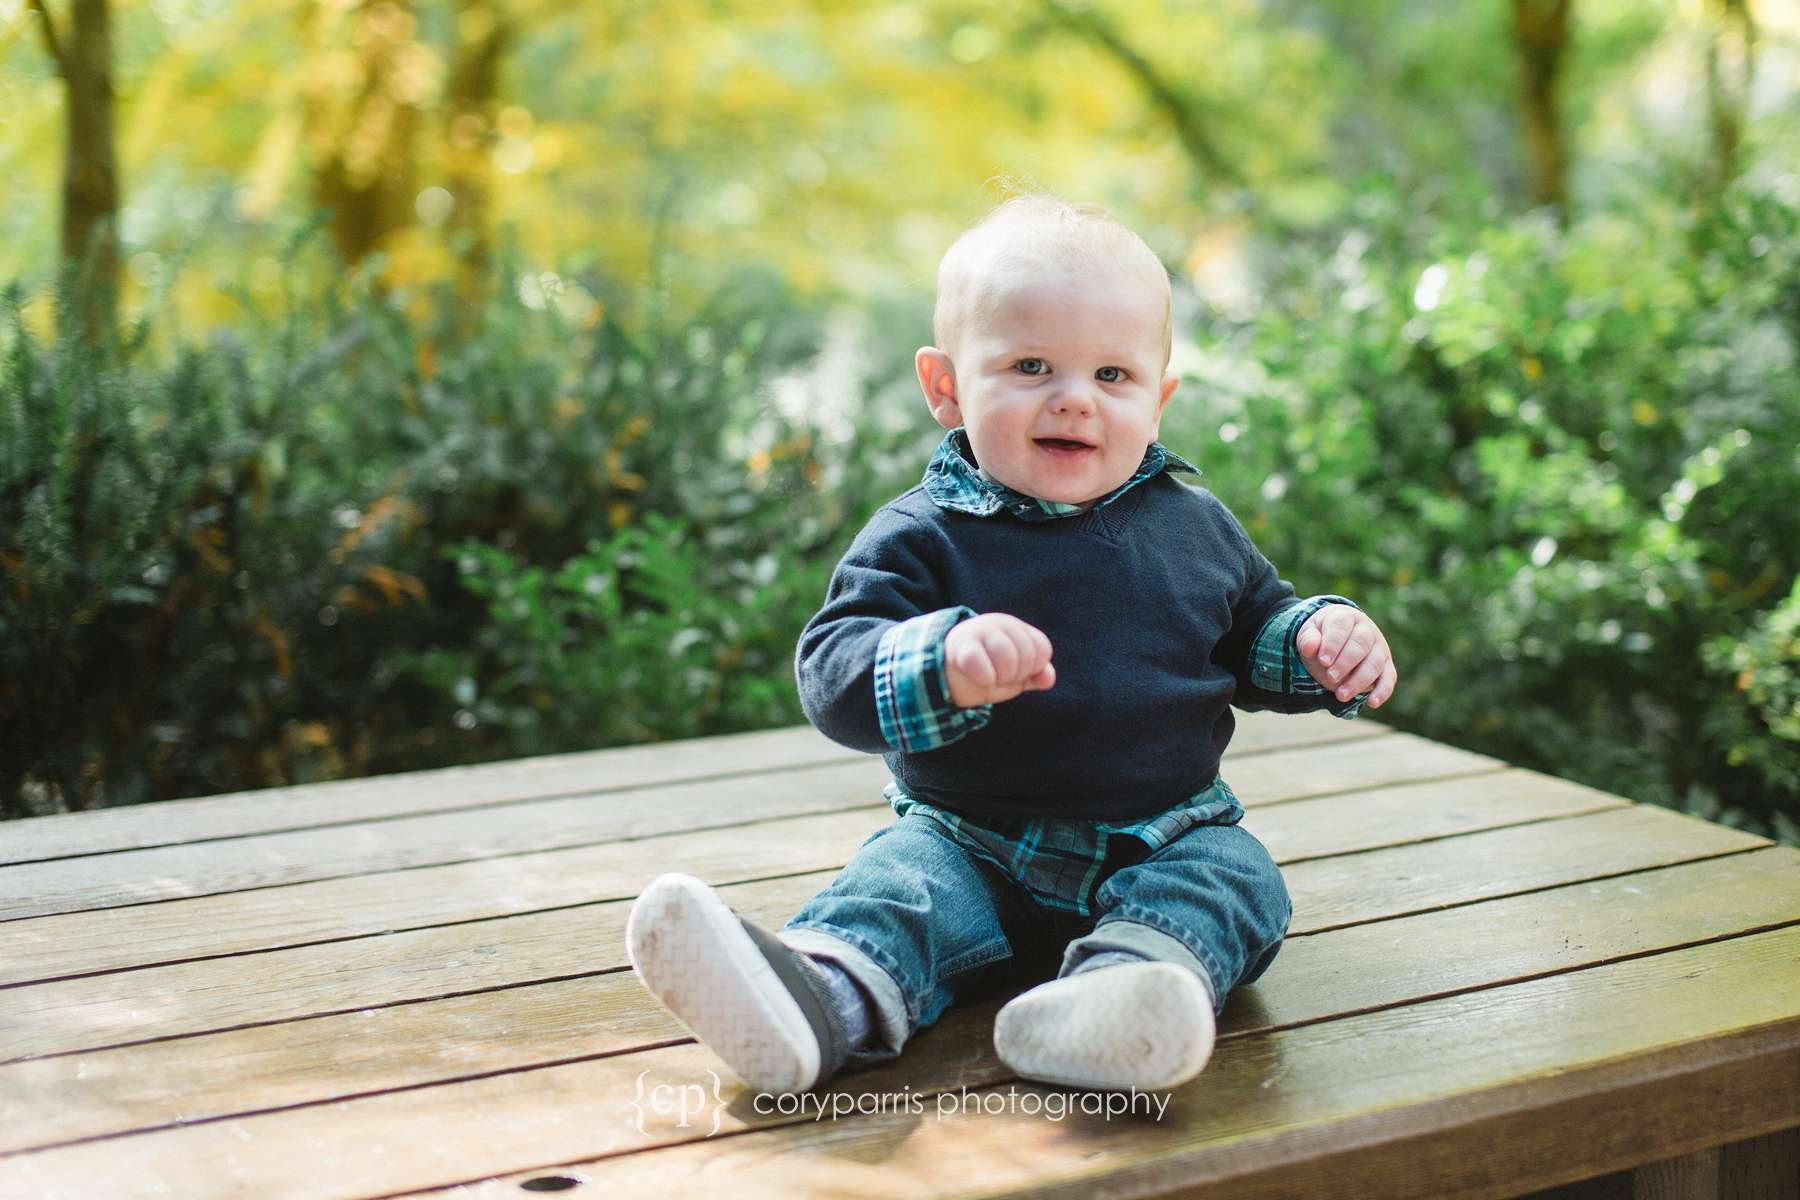 Smiling toddler baby photographer portraits in Bellevue